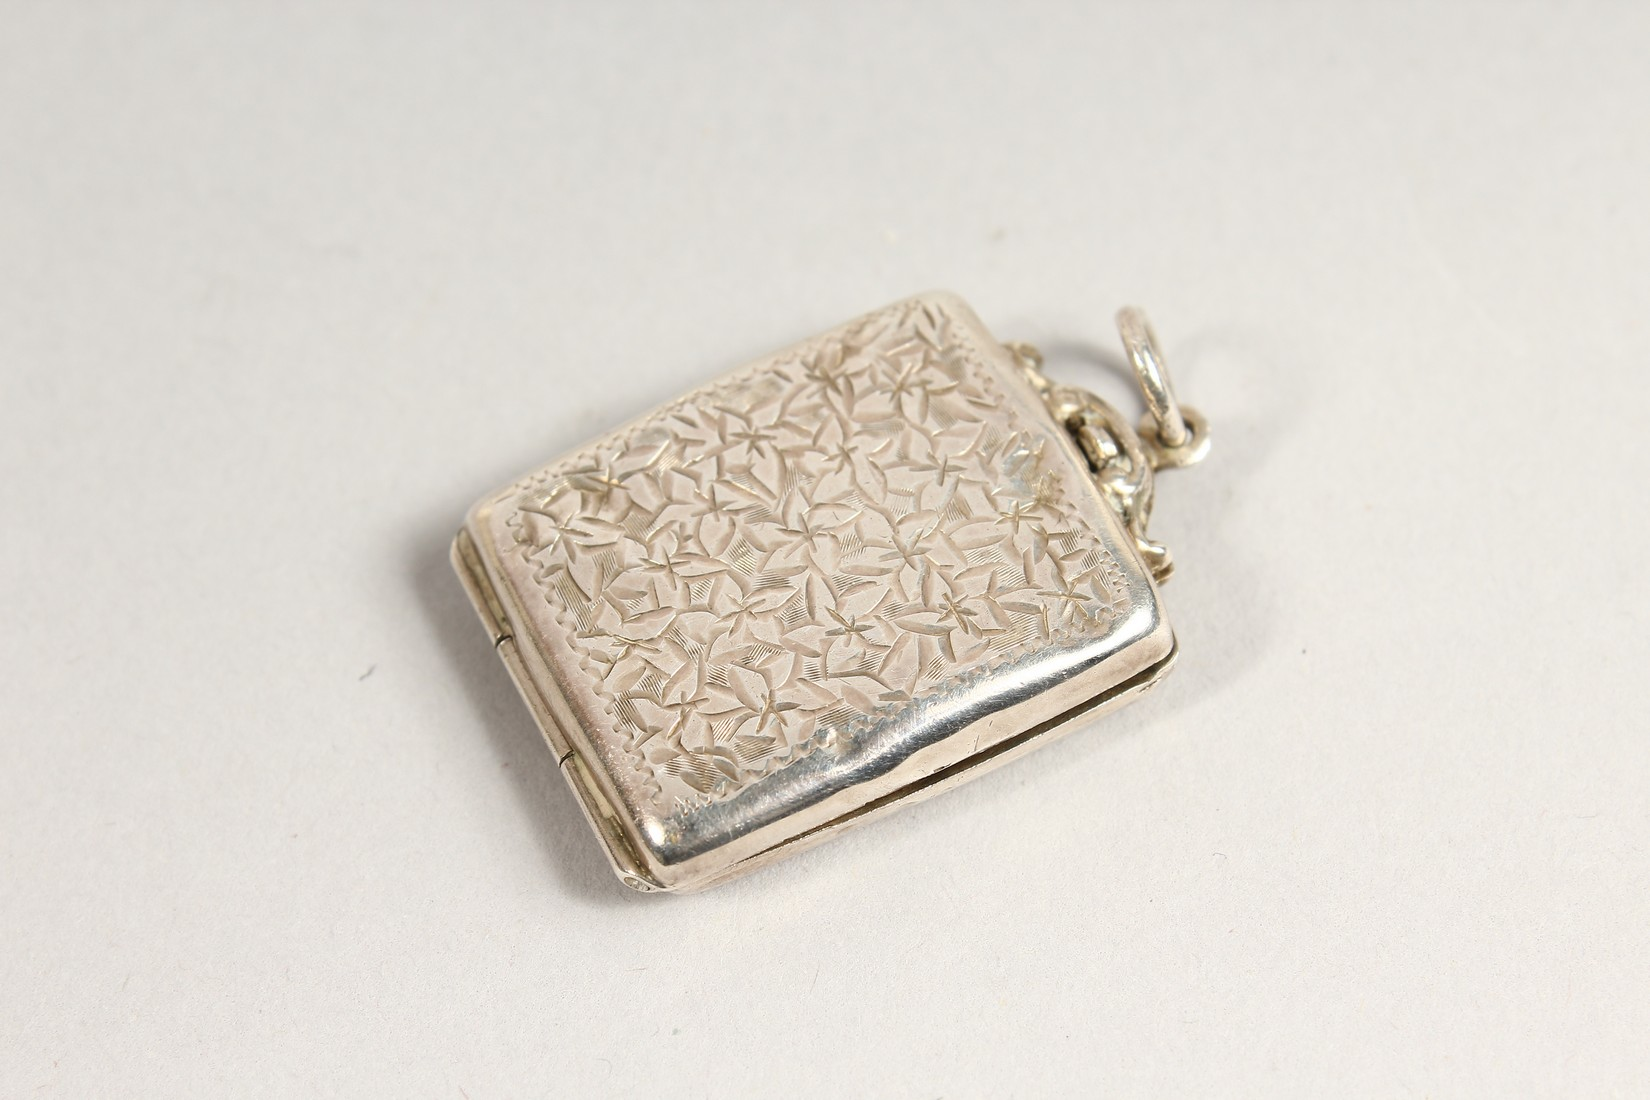 AN ENGRAVED SILVER STAMP HOLDER. - Image 2 of 3